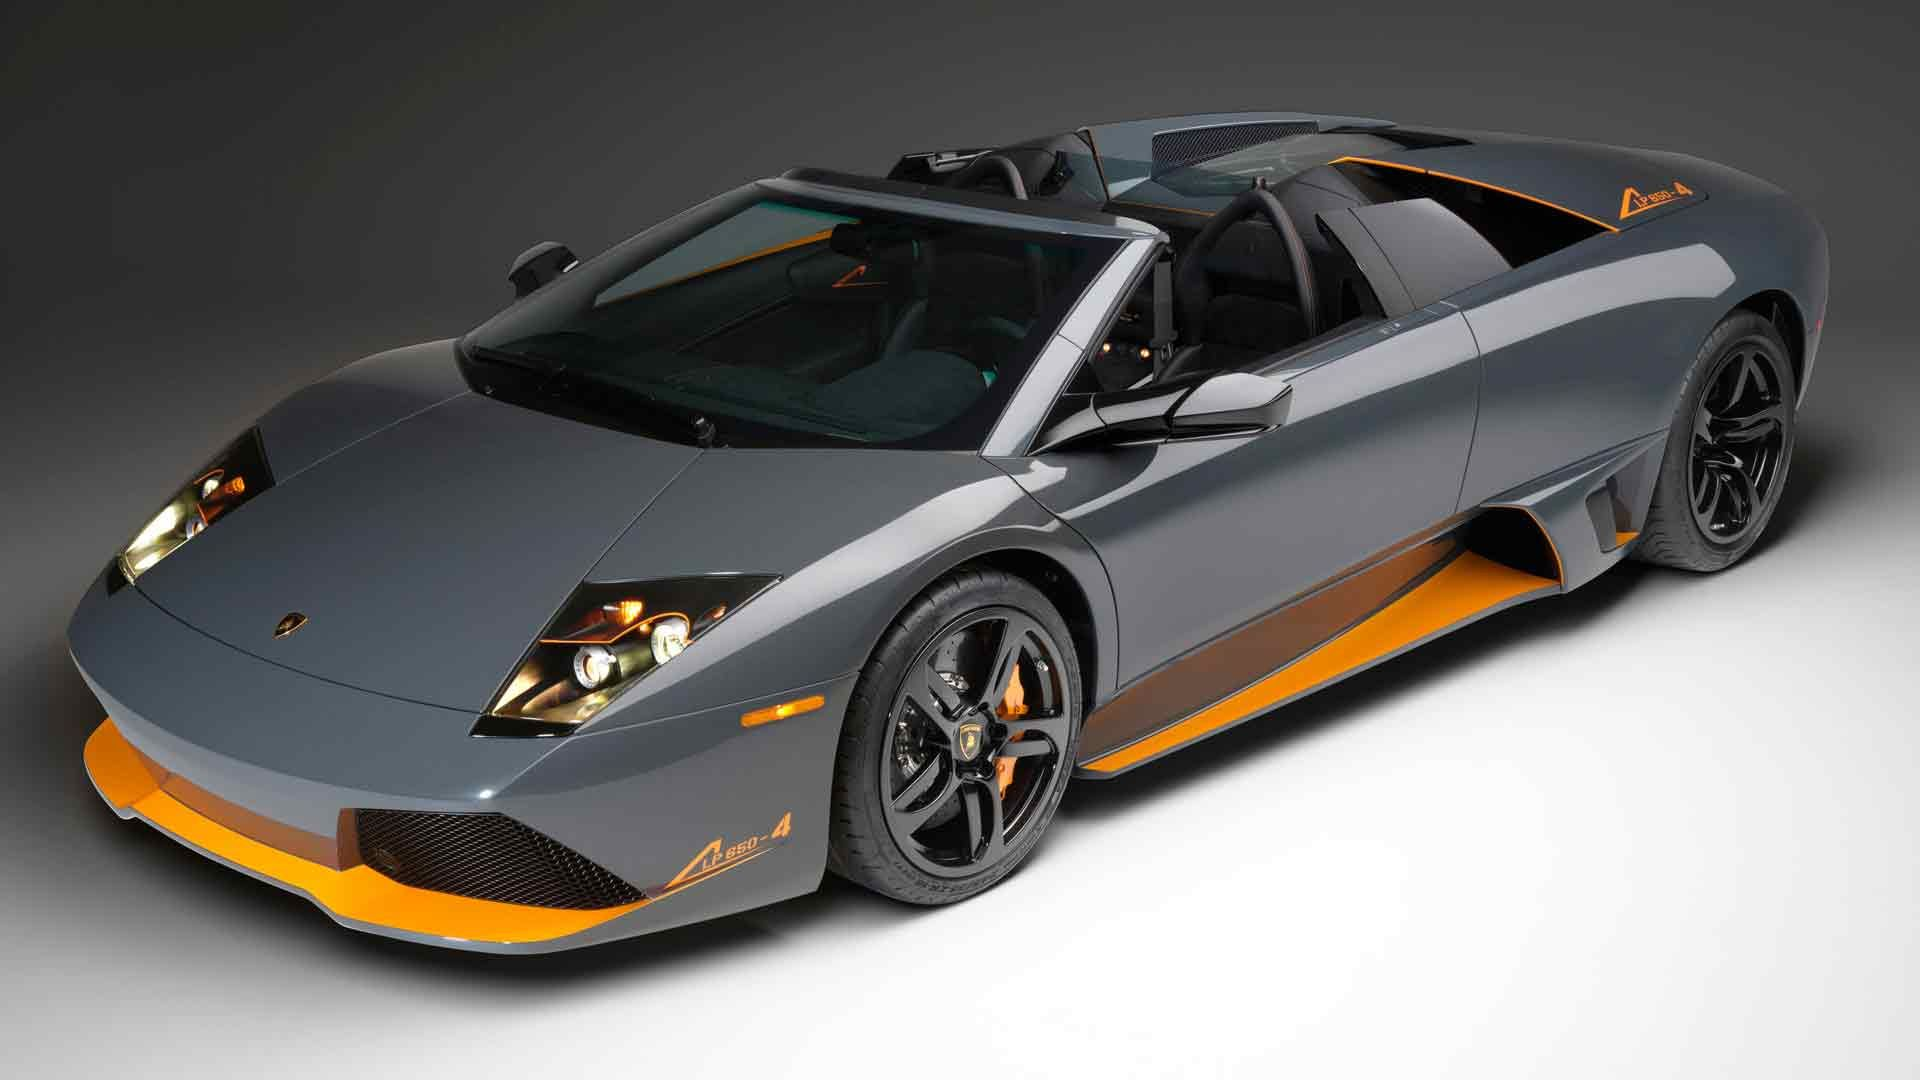 Lamborghini Photos Featuring All Models From The Veneno To The Murcielago Feel Free To